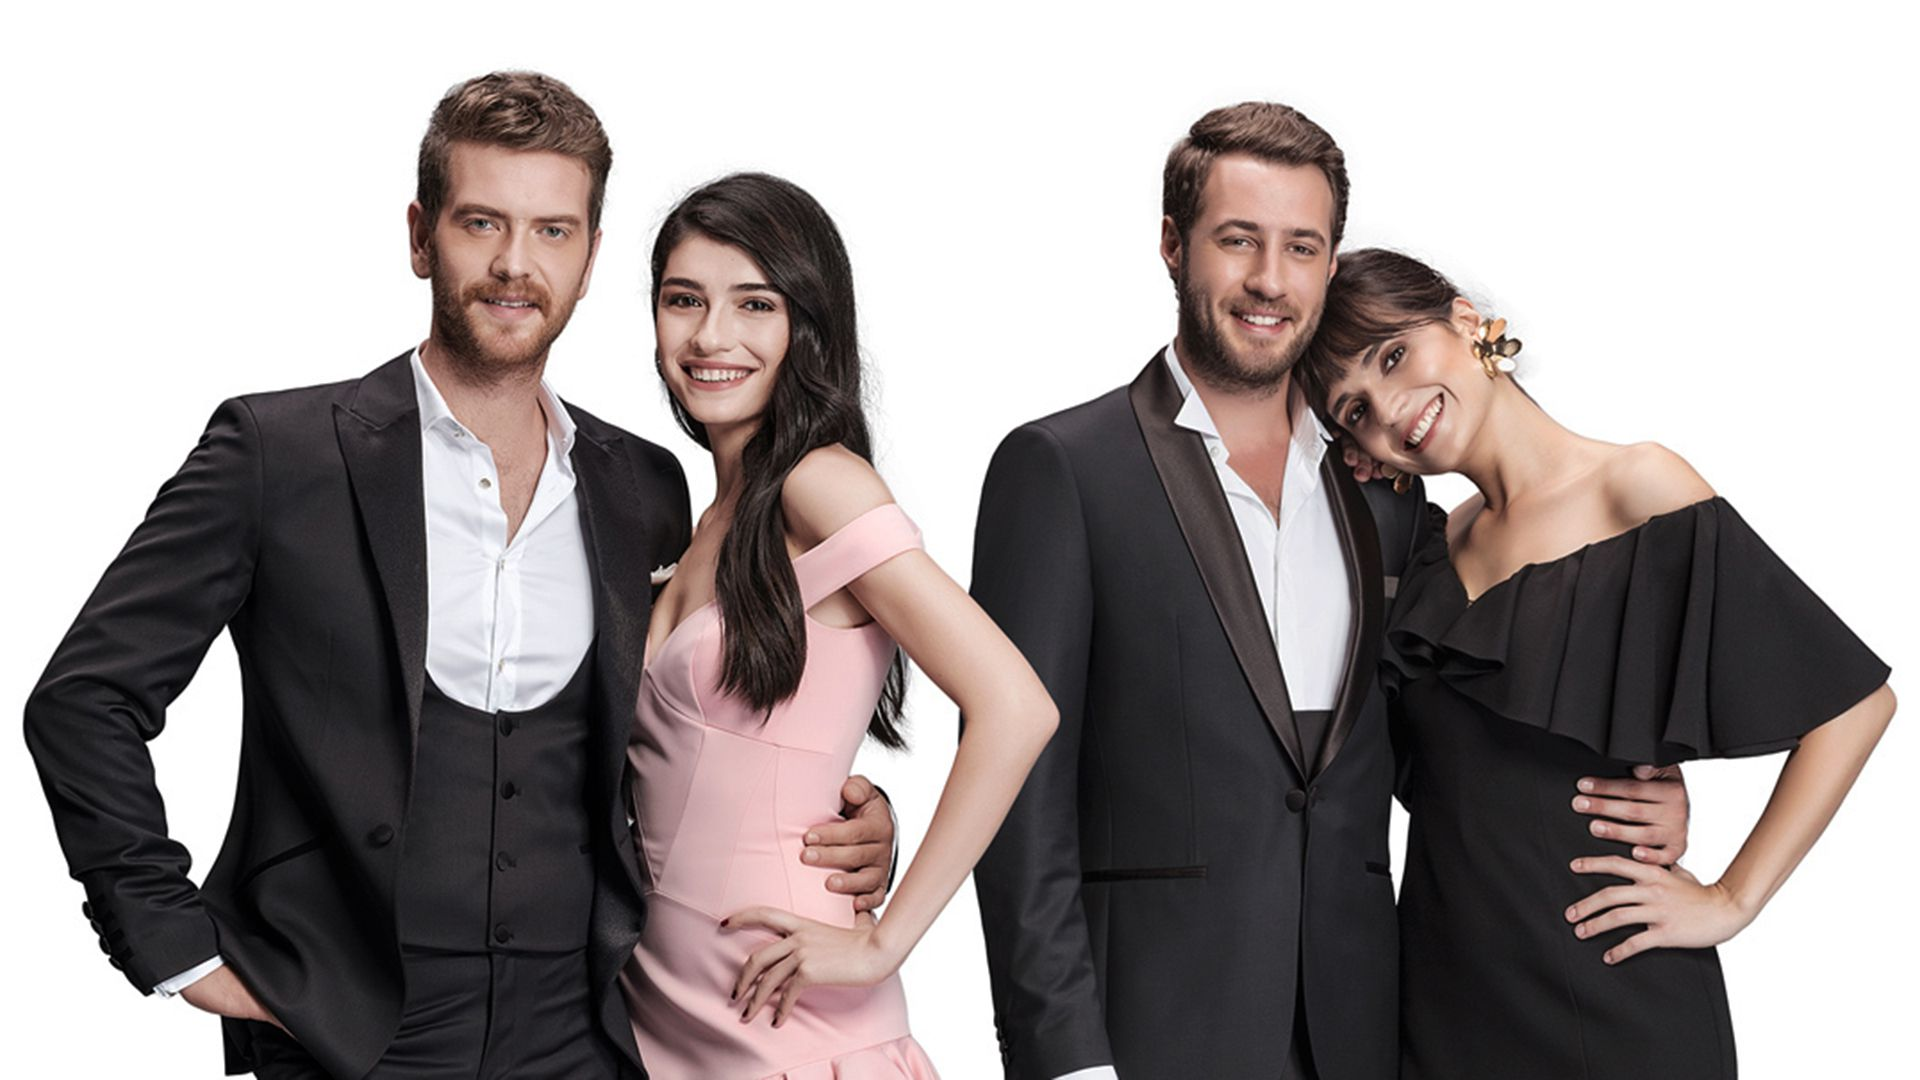 دانلود آهنگ yuksek-sosyete-manidar-ft-birce-akalay-ft-alex